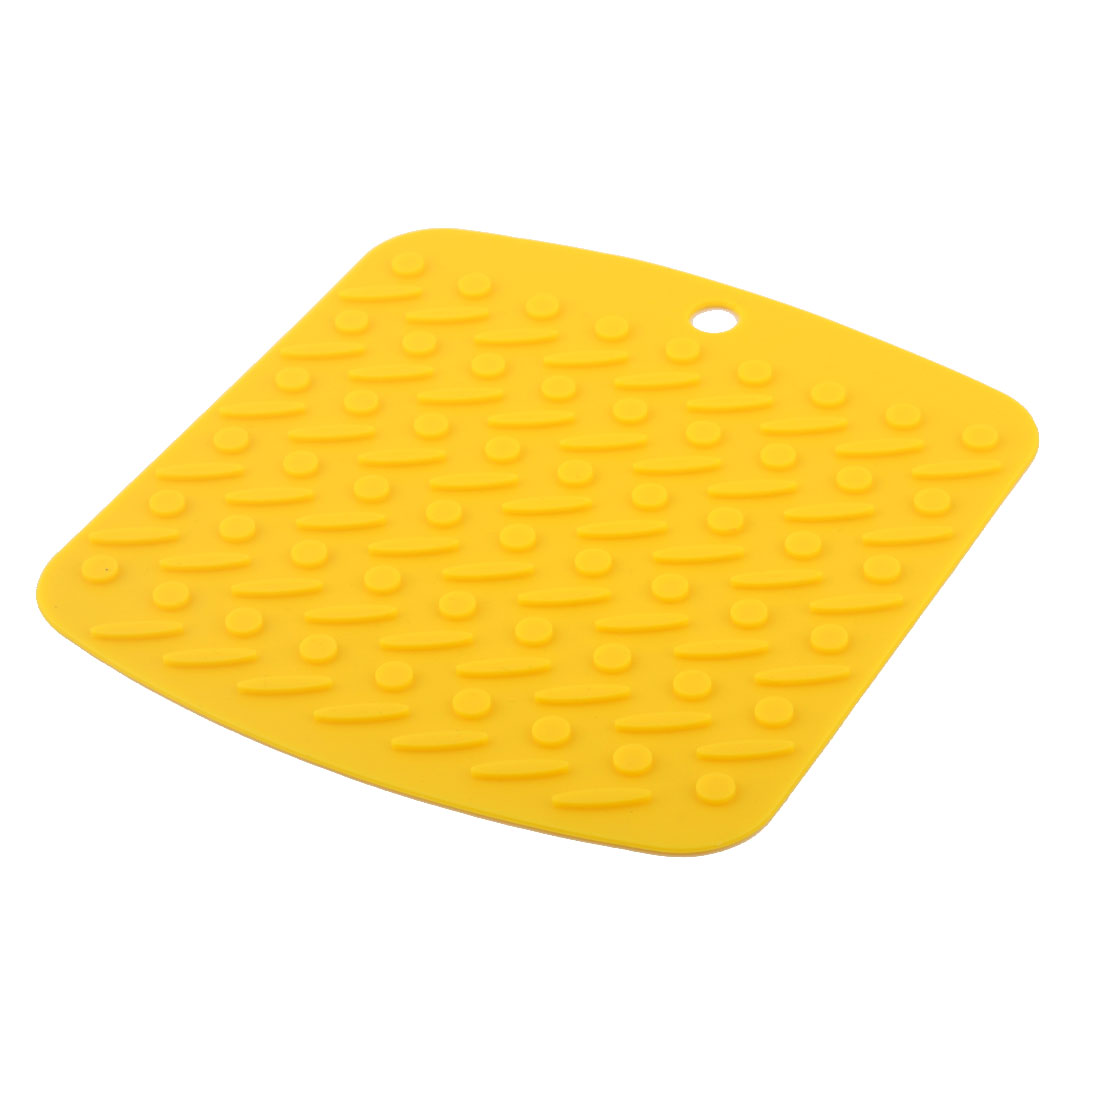 Silicone Nonslip Table Heat Resistant Mat Bowl Cup Cushion Placemat Pad Yellow